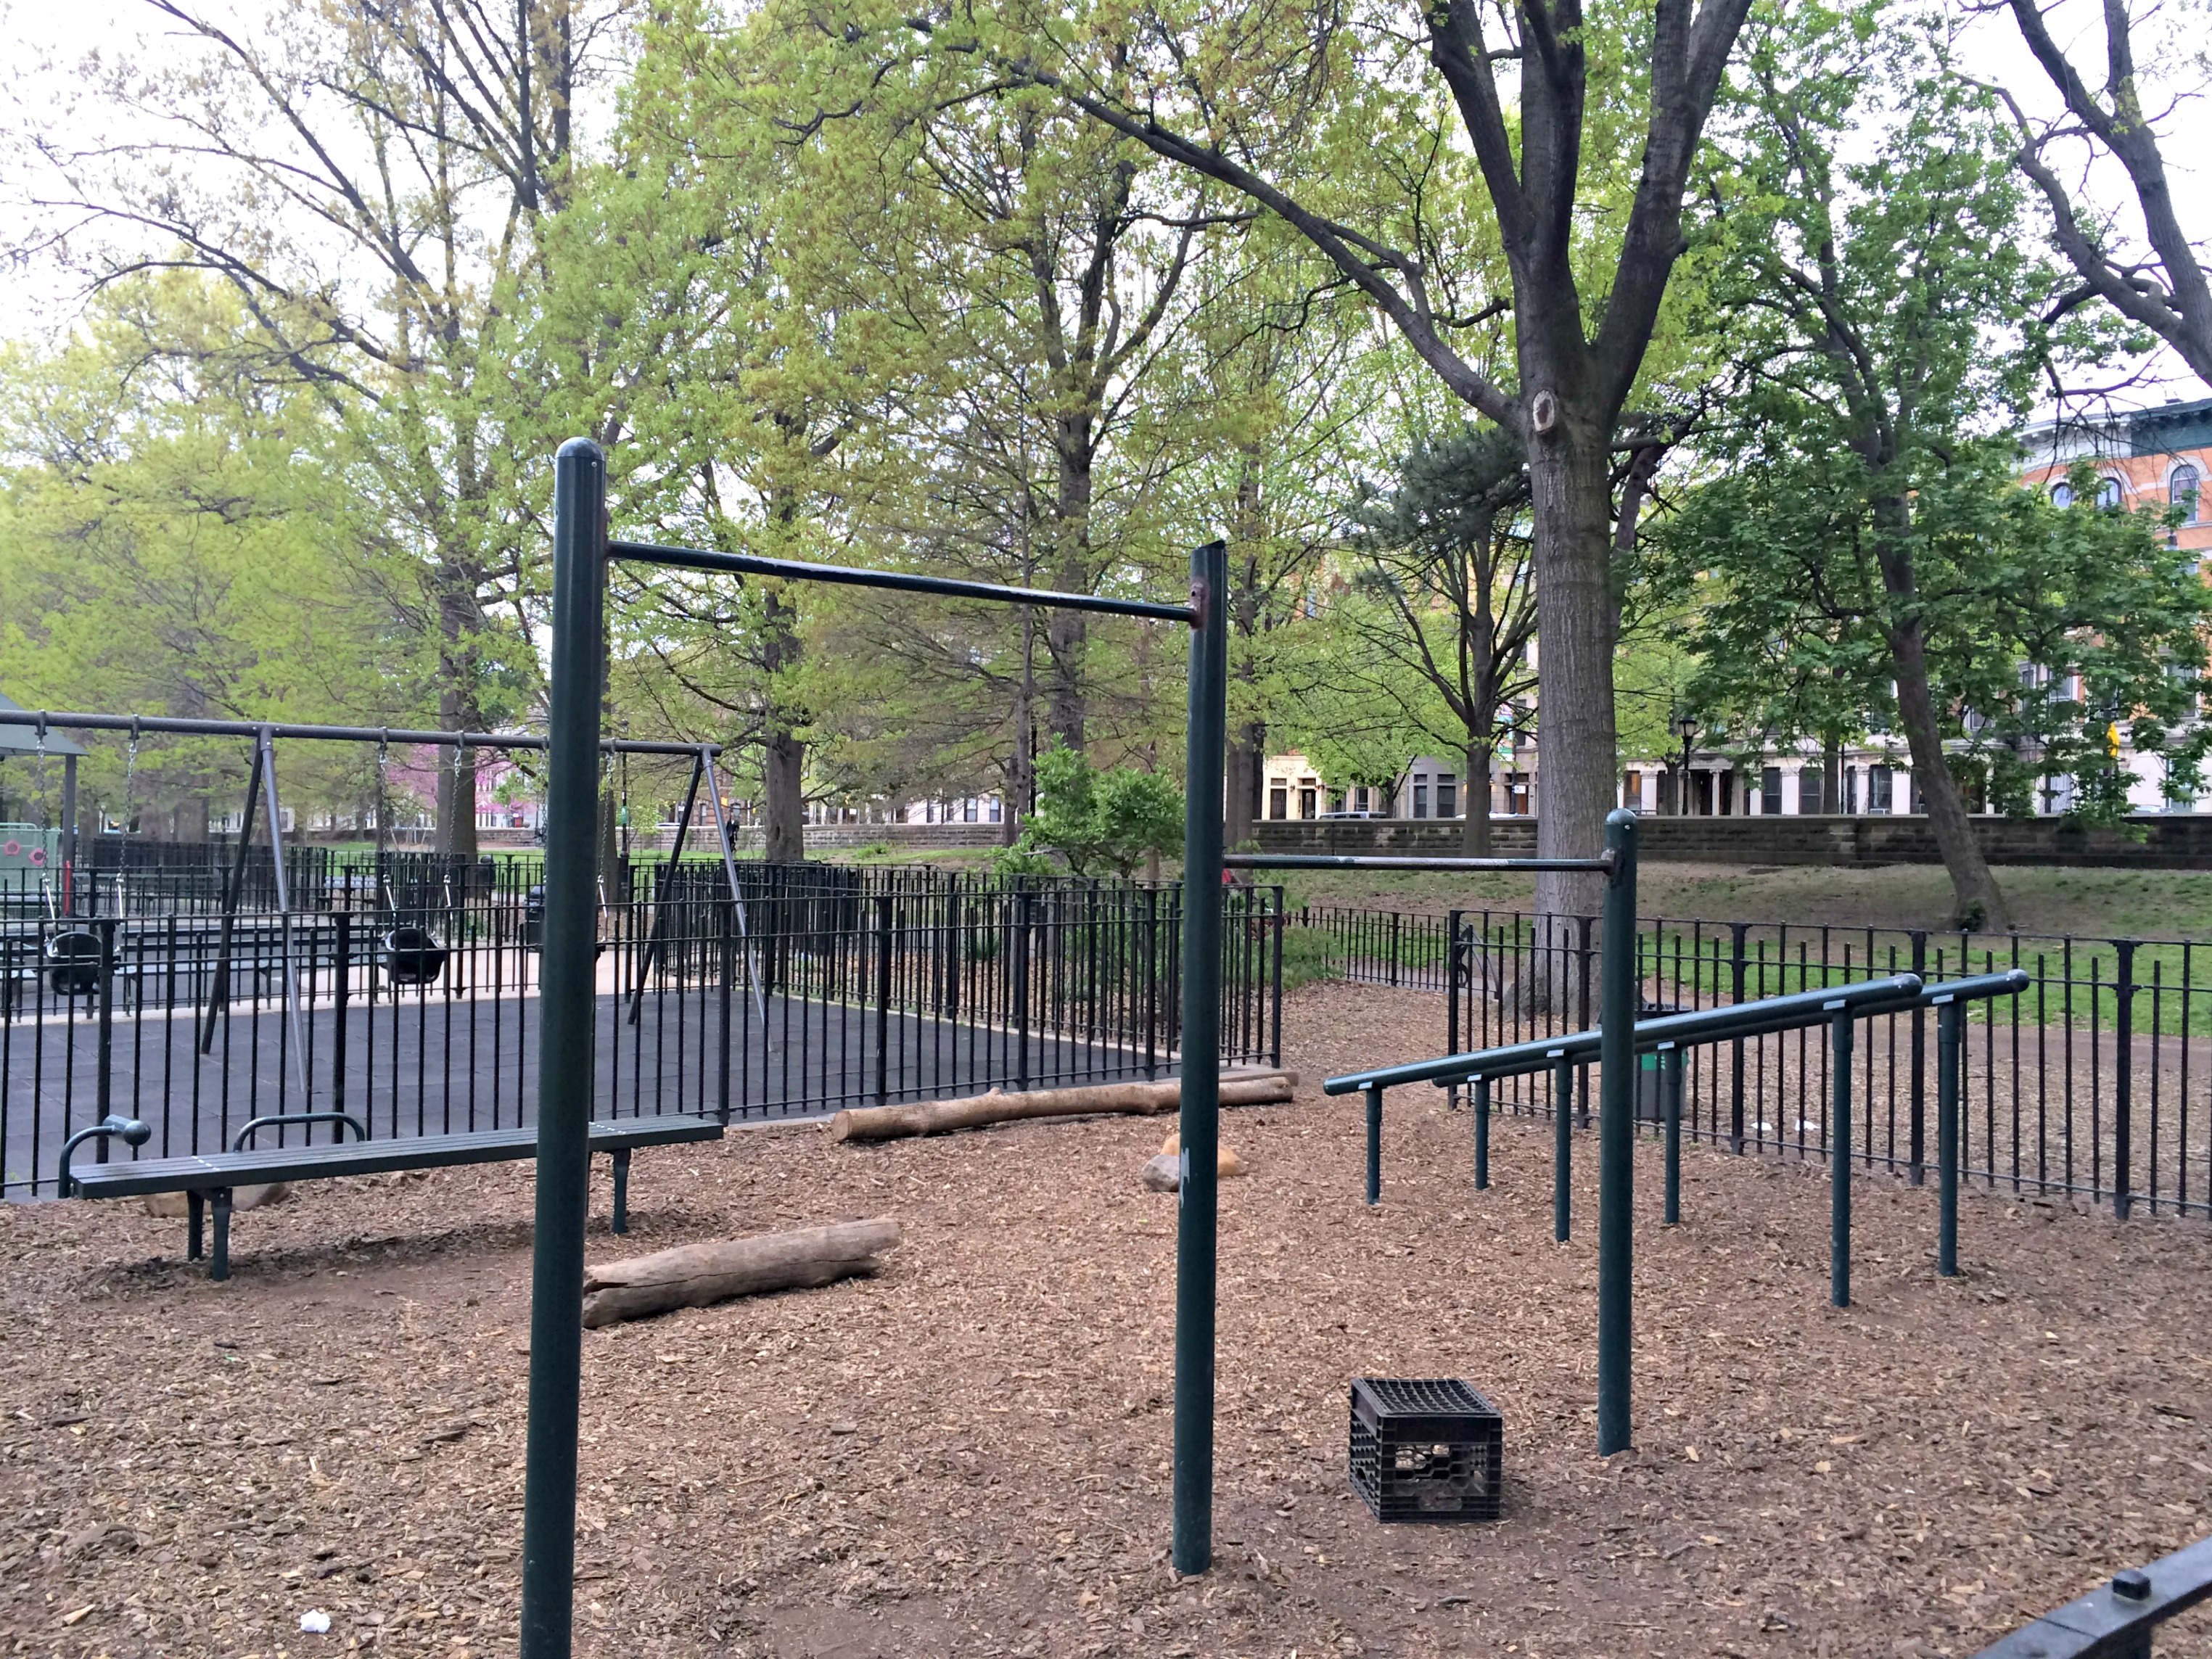 Prospect Park workout area